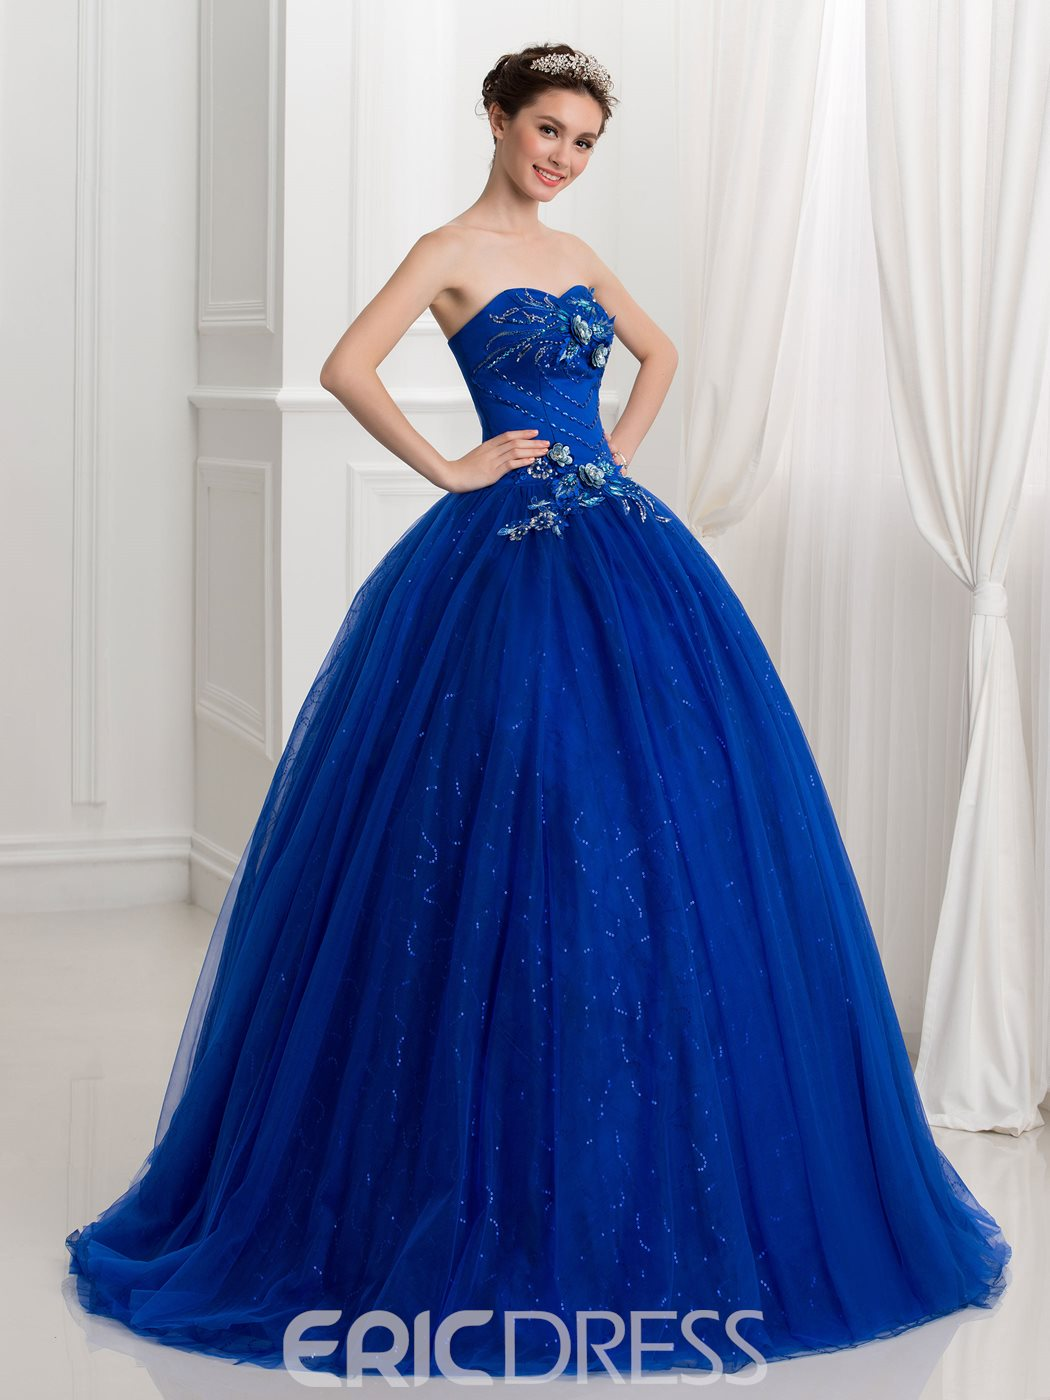 Ericdress Schatz Applikationen Perlen Pailletten Ball Gown Quinceanera Kleid